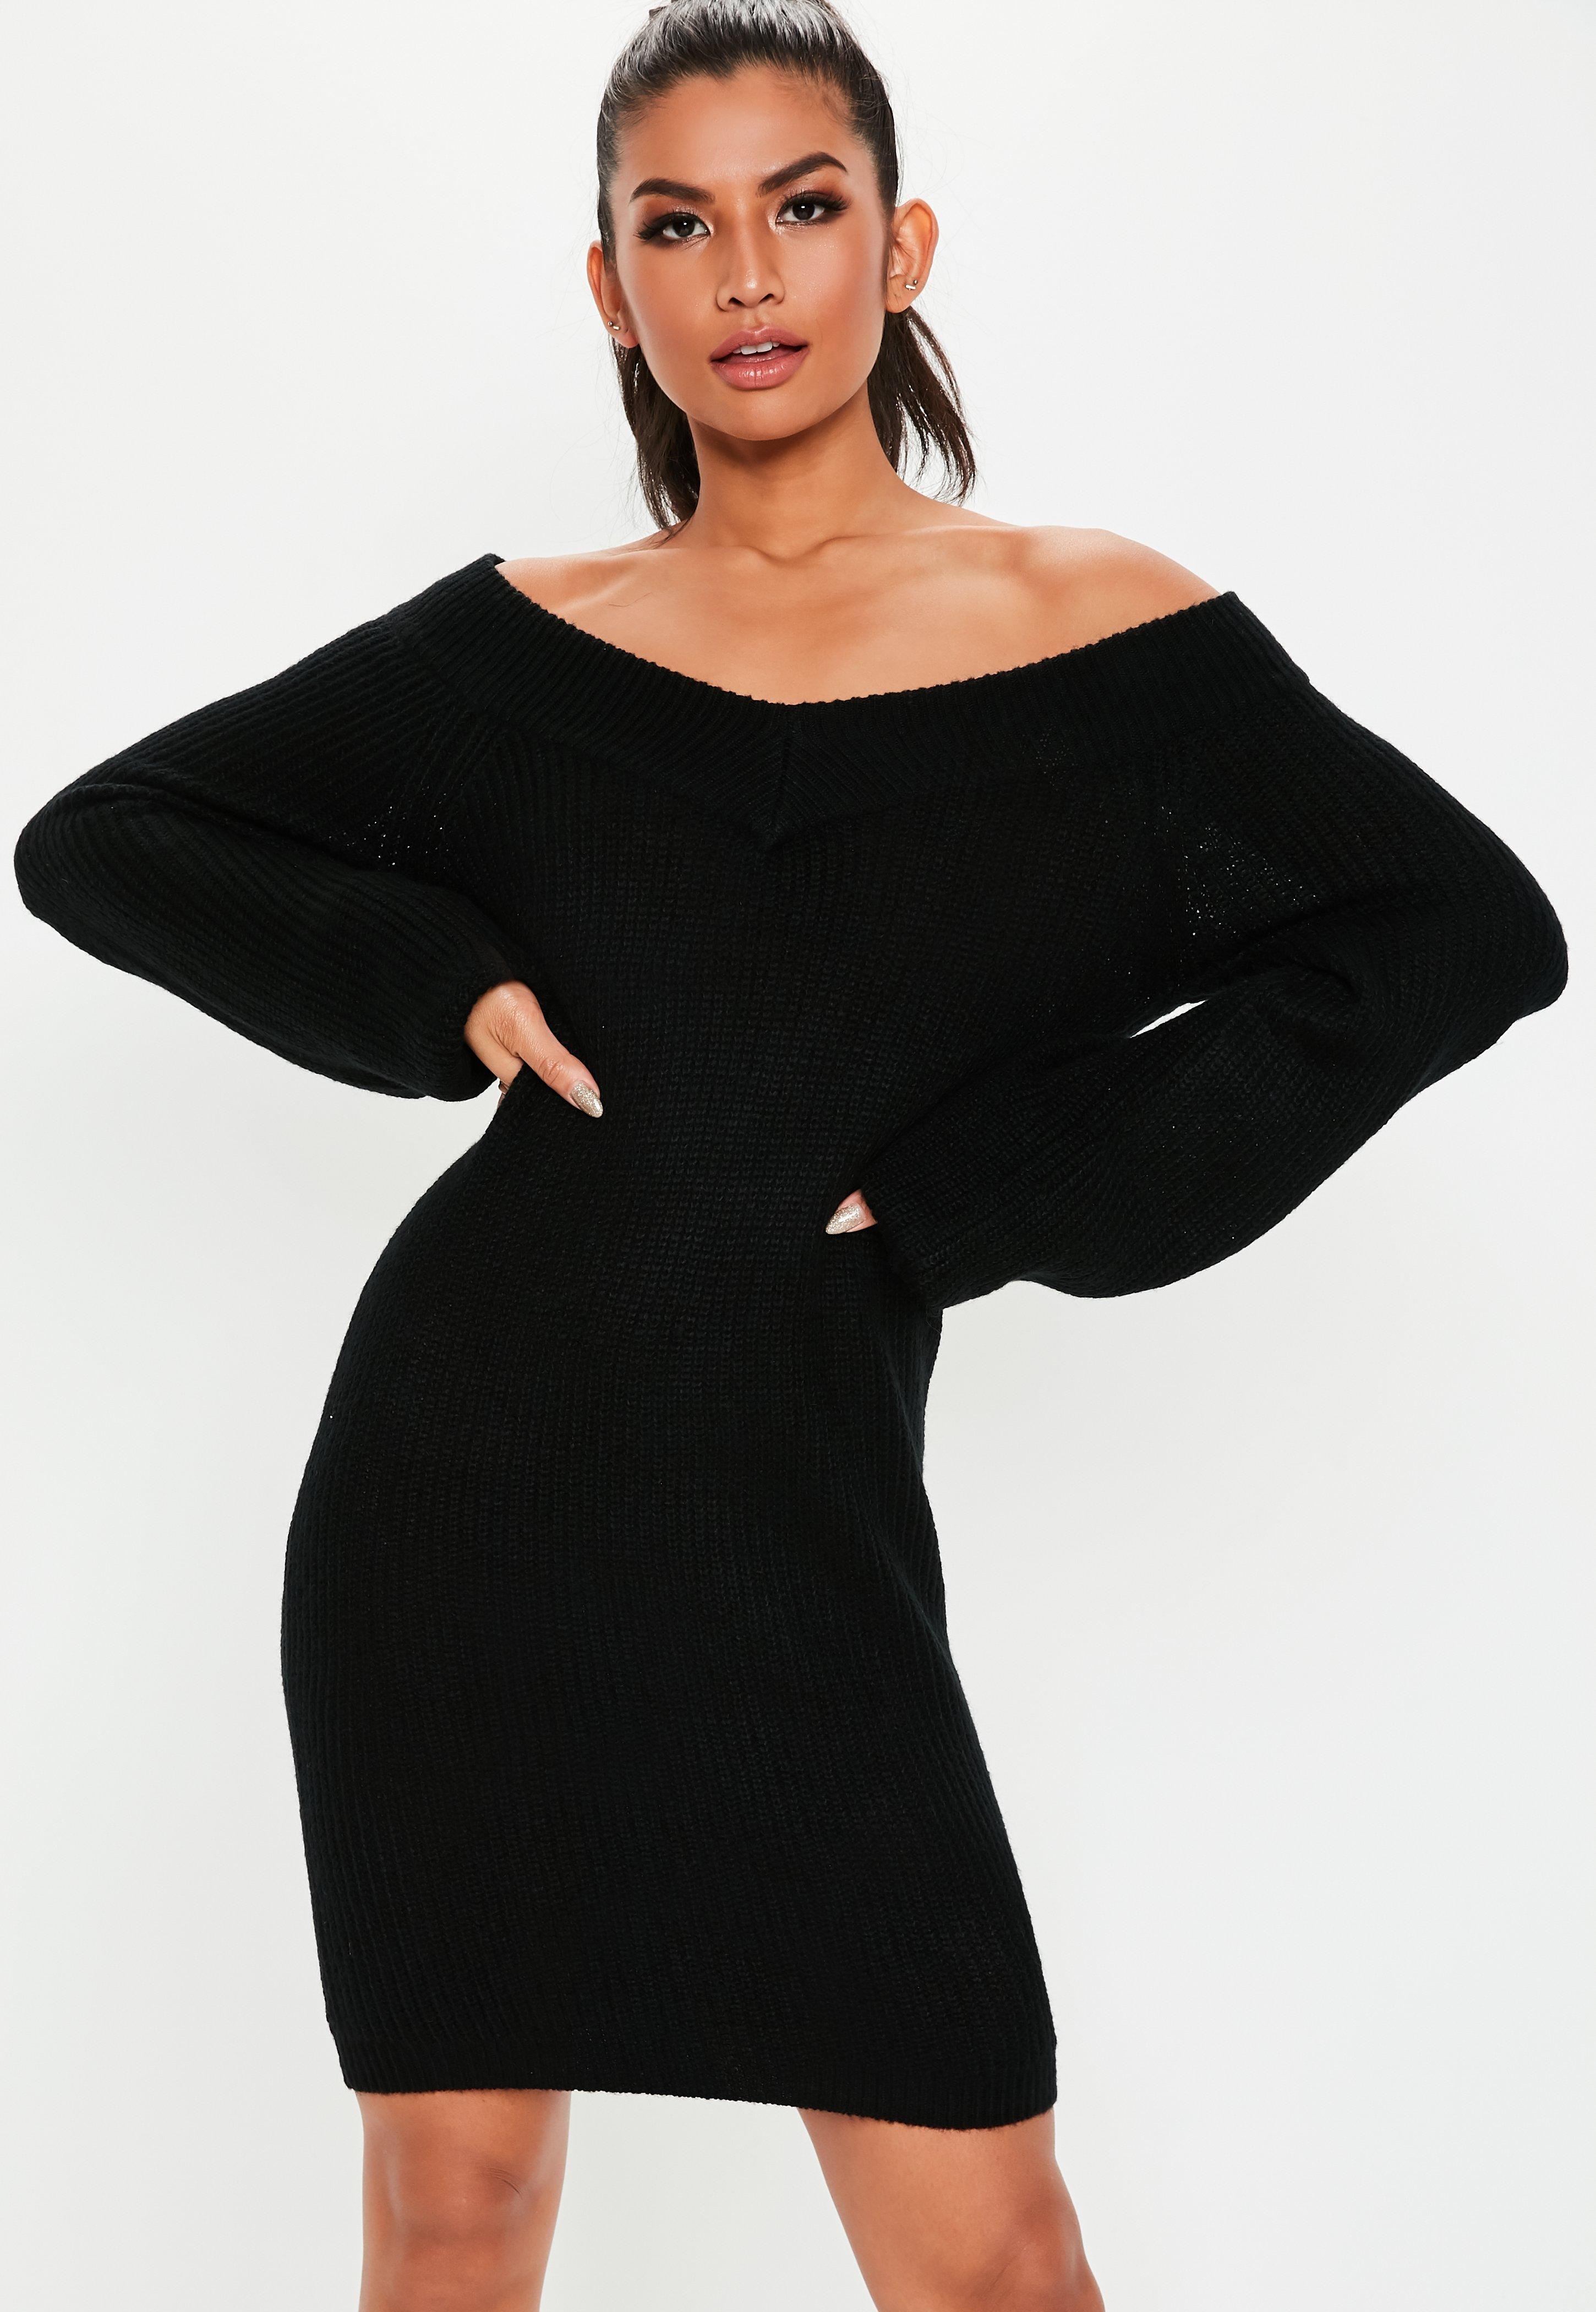 824f352d6567 Cheap Knitwear for Women- Sale & Clearance - Missguided